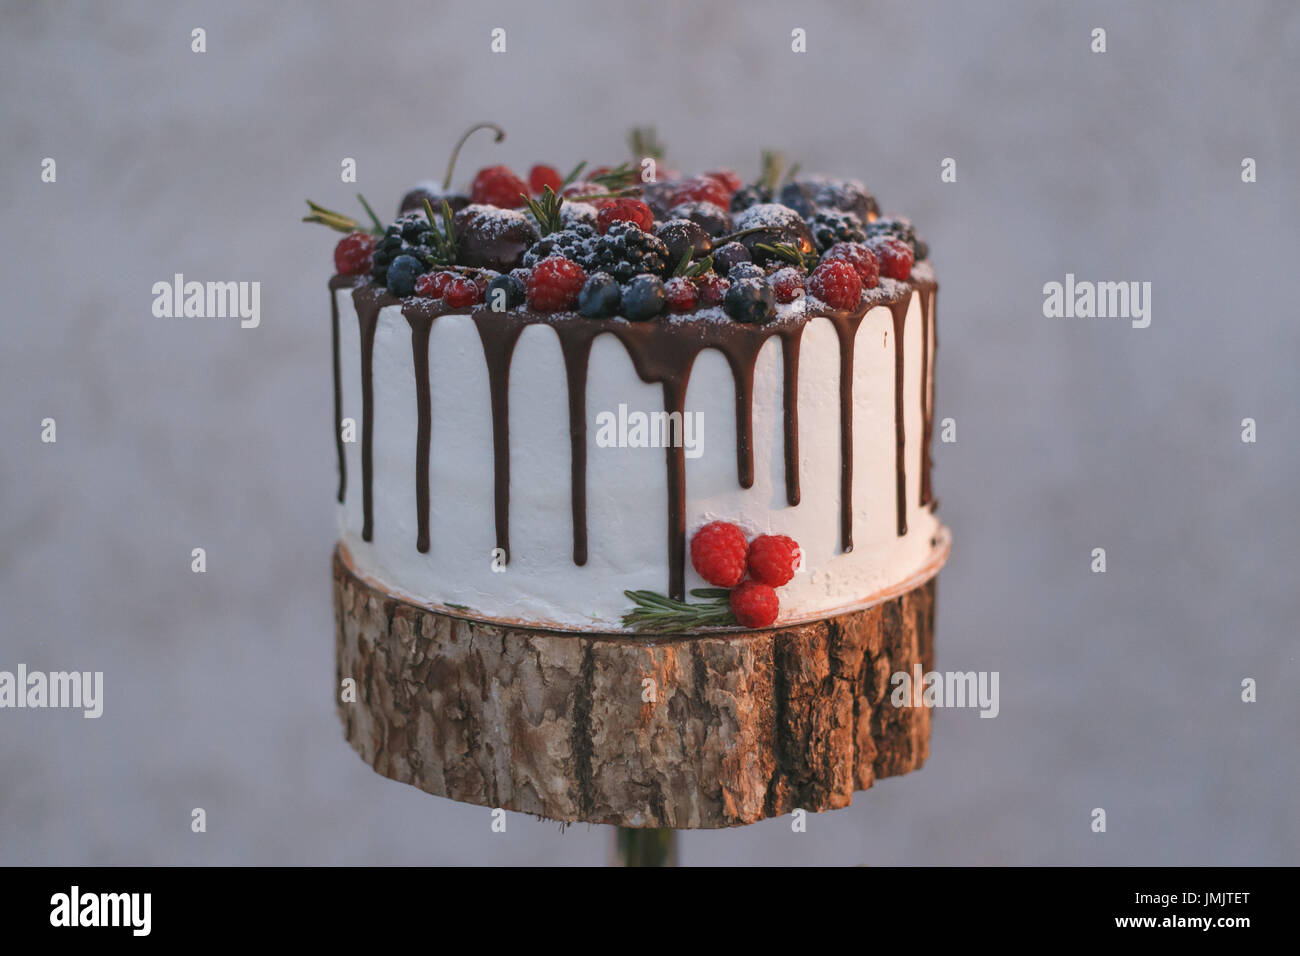 A wedding cake with berries, poured with chocolate on a shelf made of wood - Stock Image